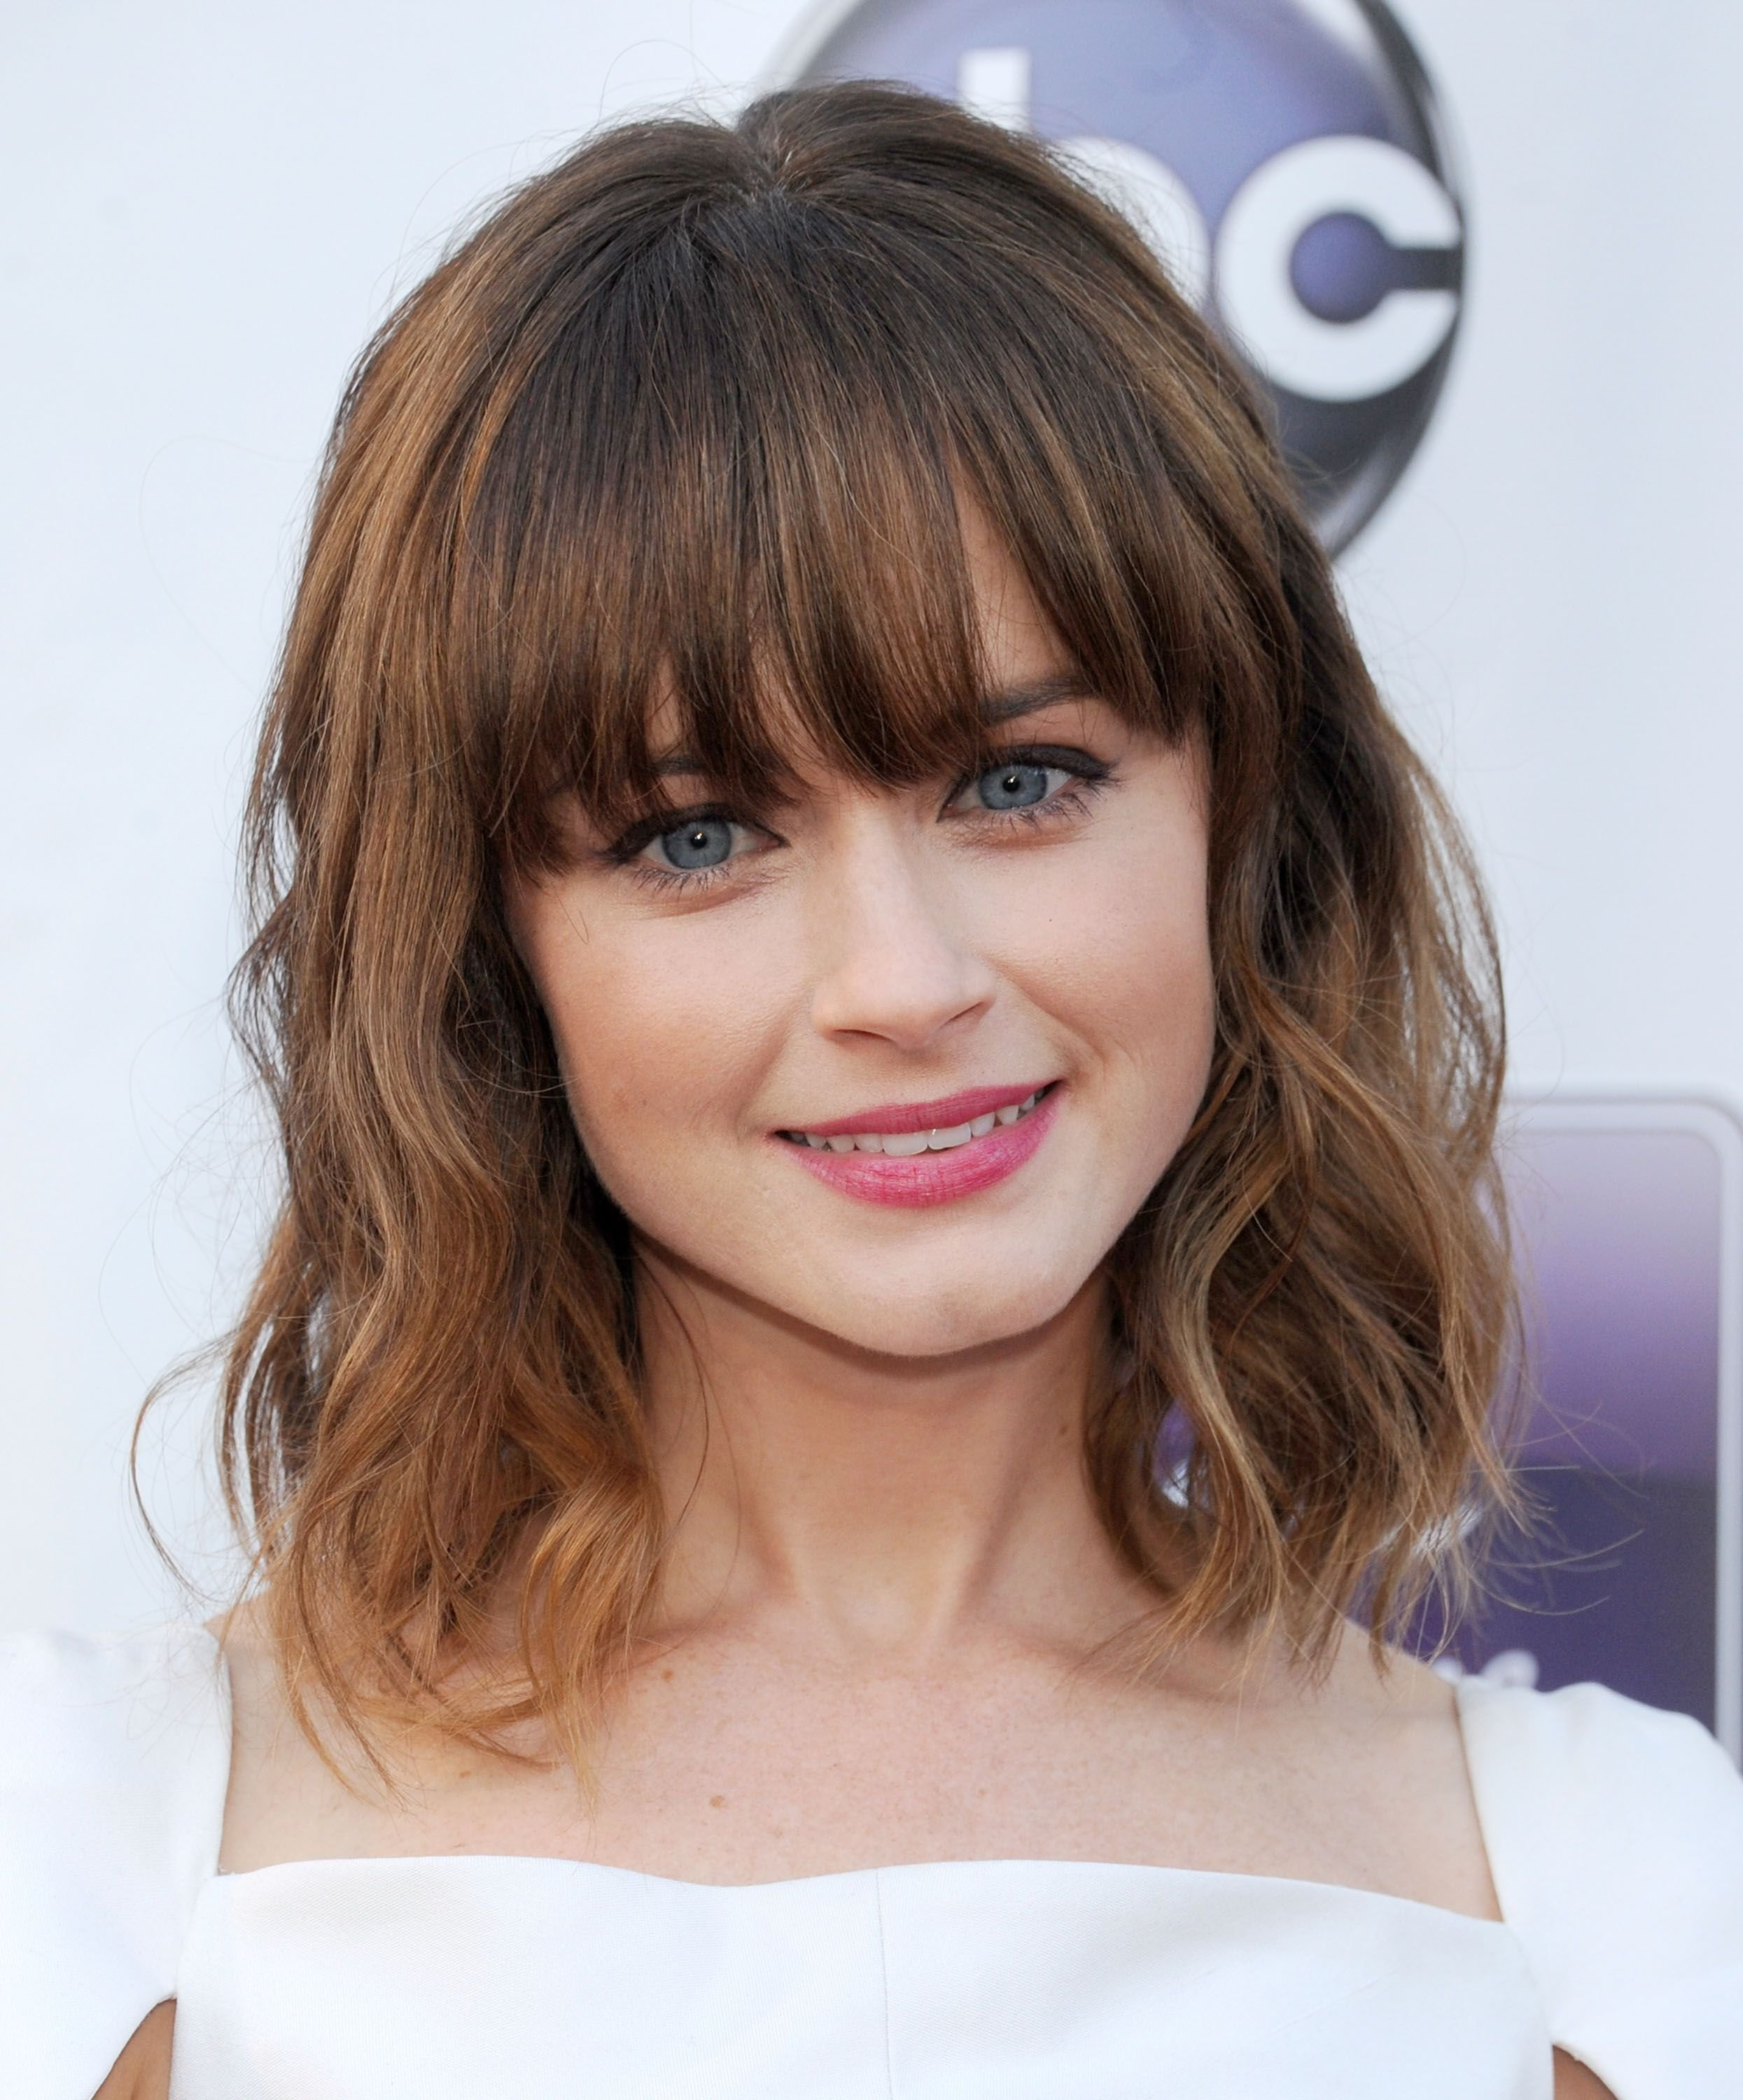 New 35 Best Hairstyles With Bangs Photos Of Celebrity Ideas With Pictures Original 1024 x 768